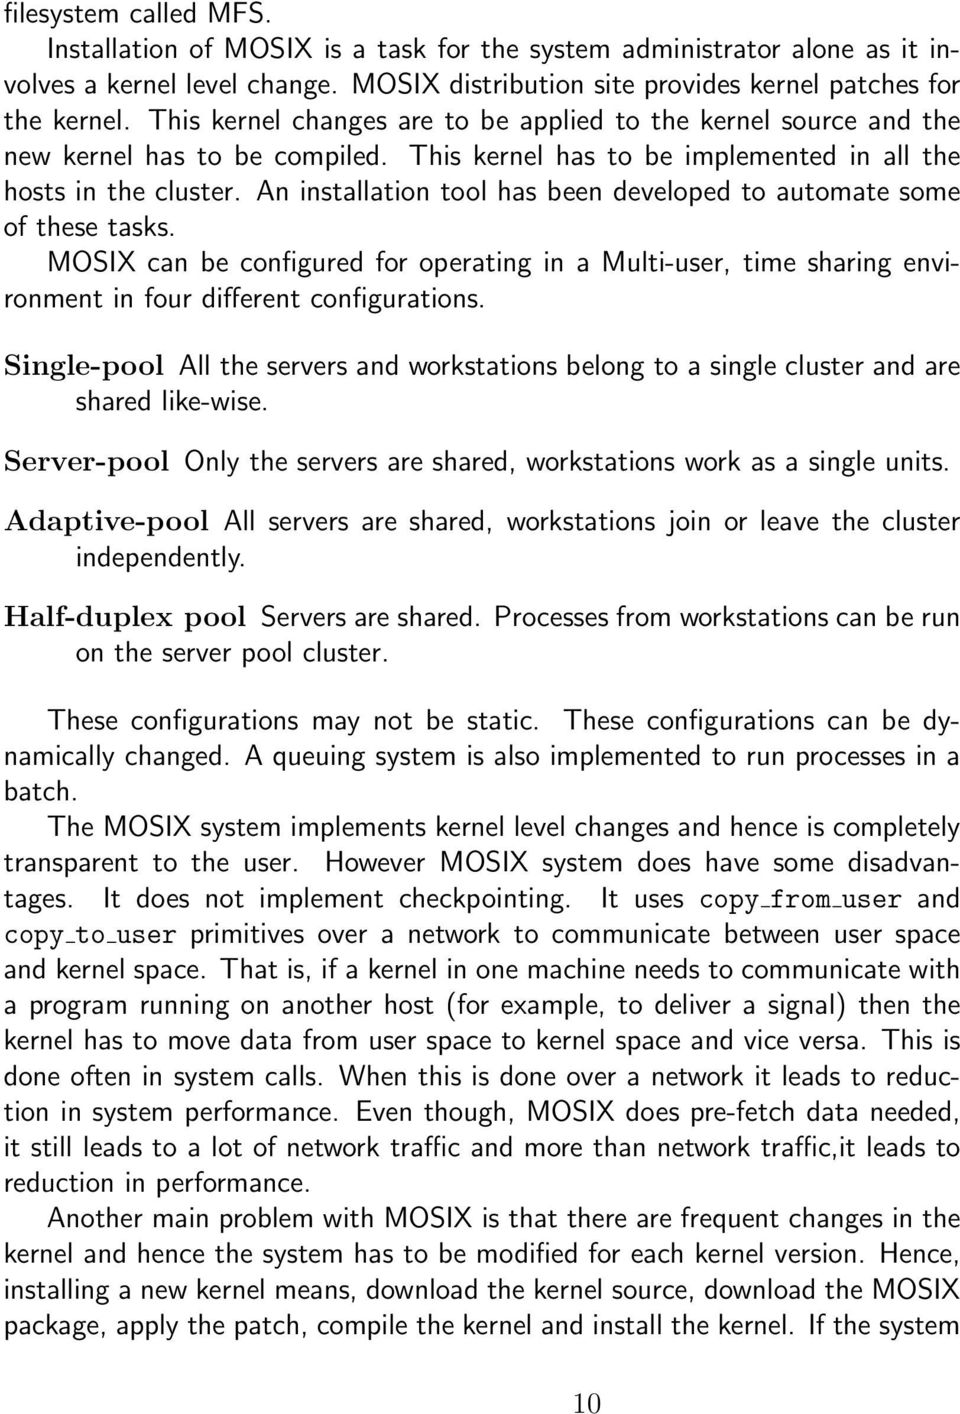 An installation tool has been developed to automate some of these tasks. MOSIX can be configured for operating in a Multi-user, time sharing environment in four different configurations.